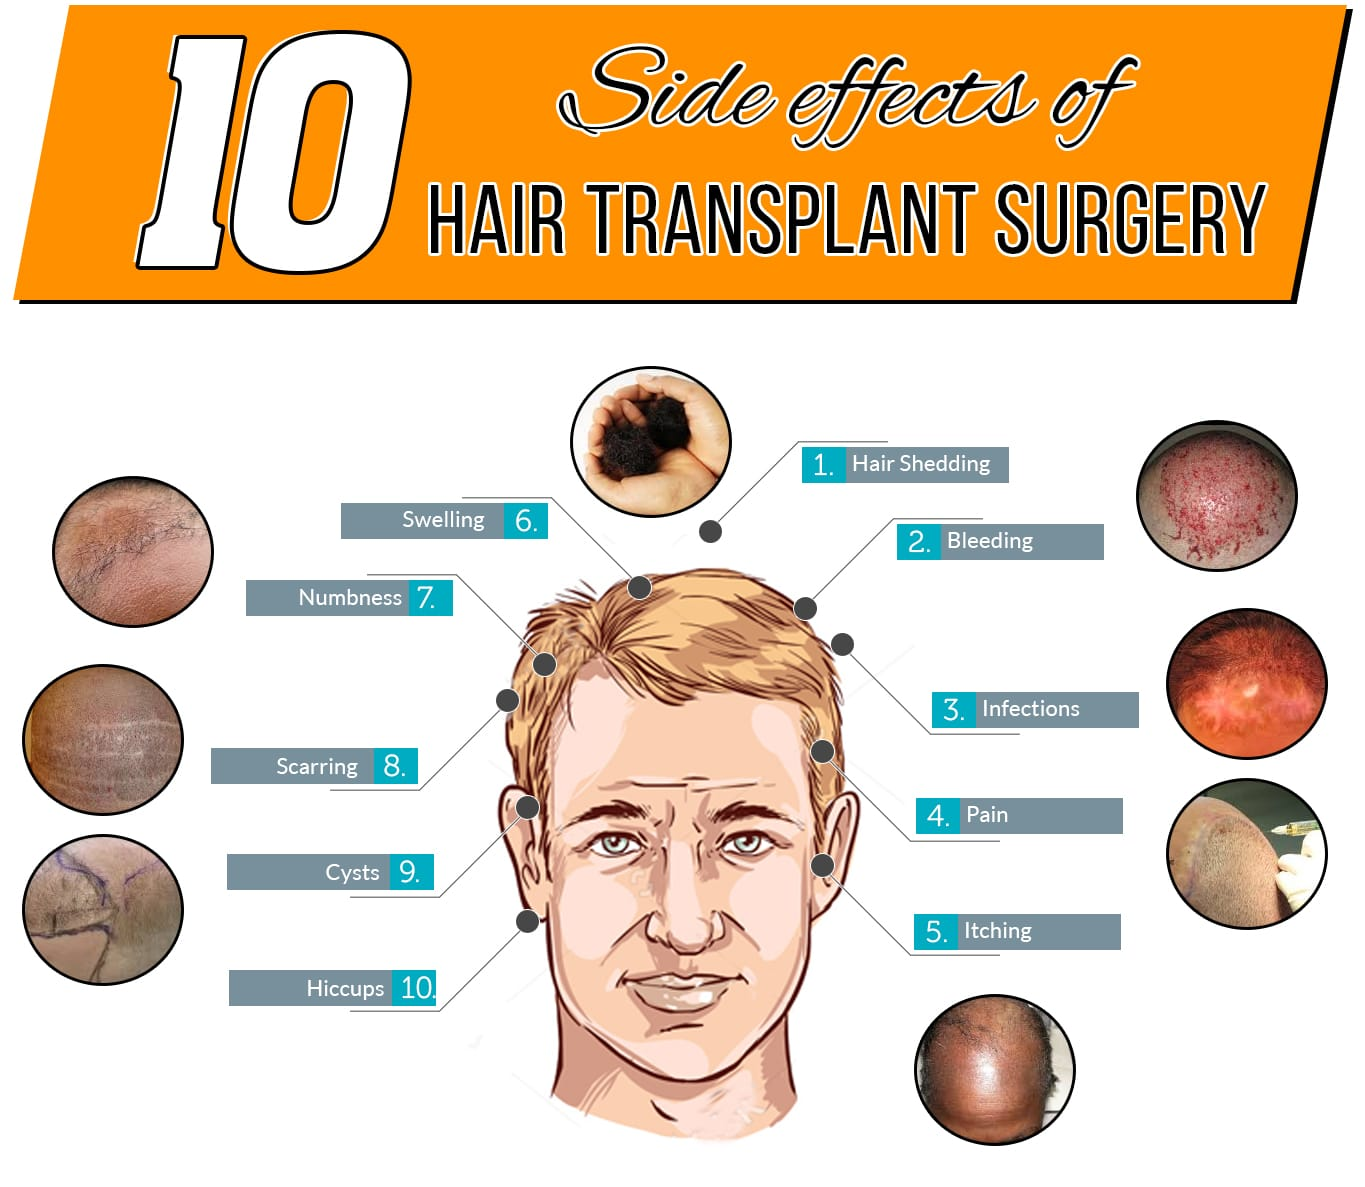 Side Effects of Hair Transplant Surgery